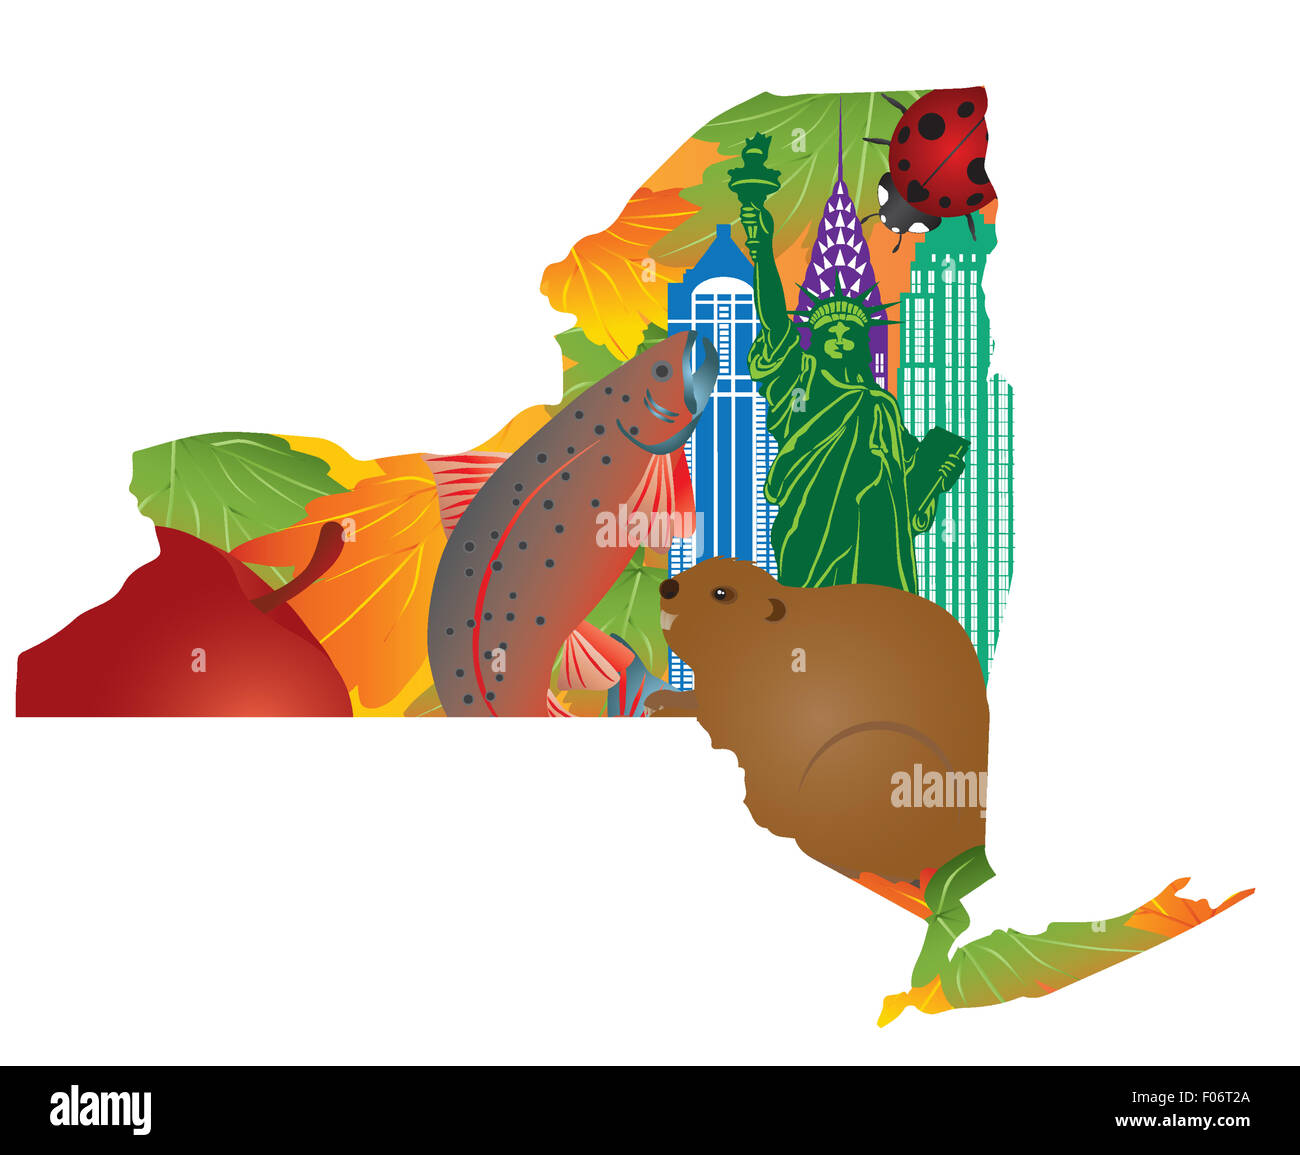 State of new york official symbols with statue of liberty beaver state of new york official symbols with statue of liberty beaver brook trout ladybug big apple sugar maple leaves in map outline buycottarizona Image collections